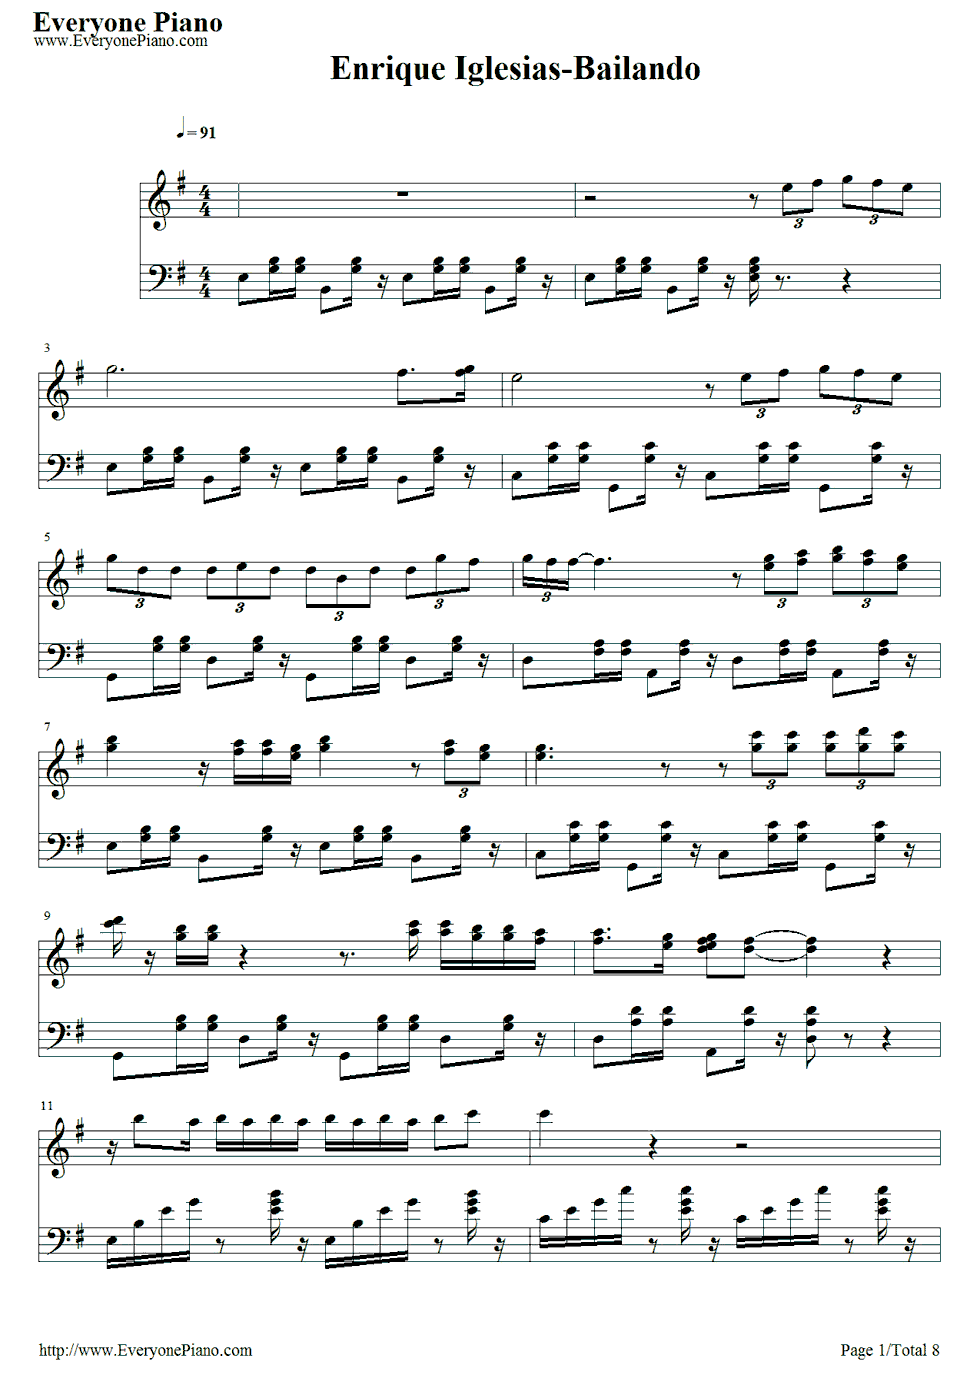 Guitar chords to stand